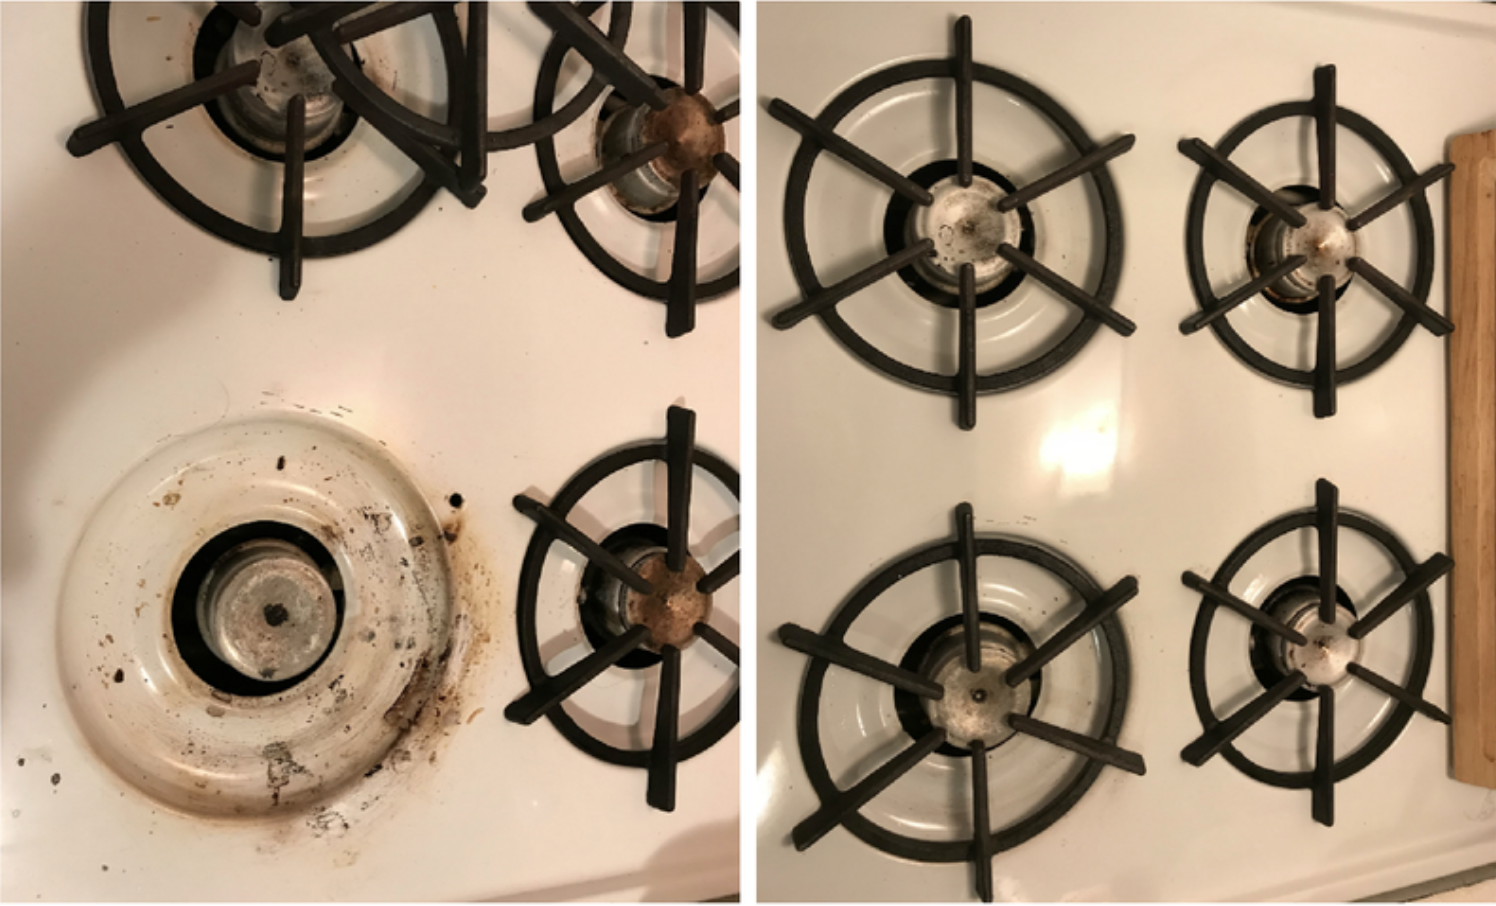 before and after image of stove with caked on burnt food stains and without